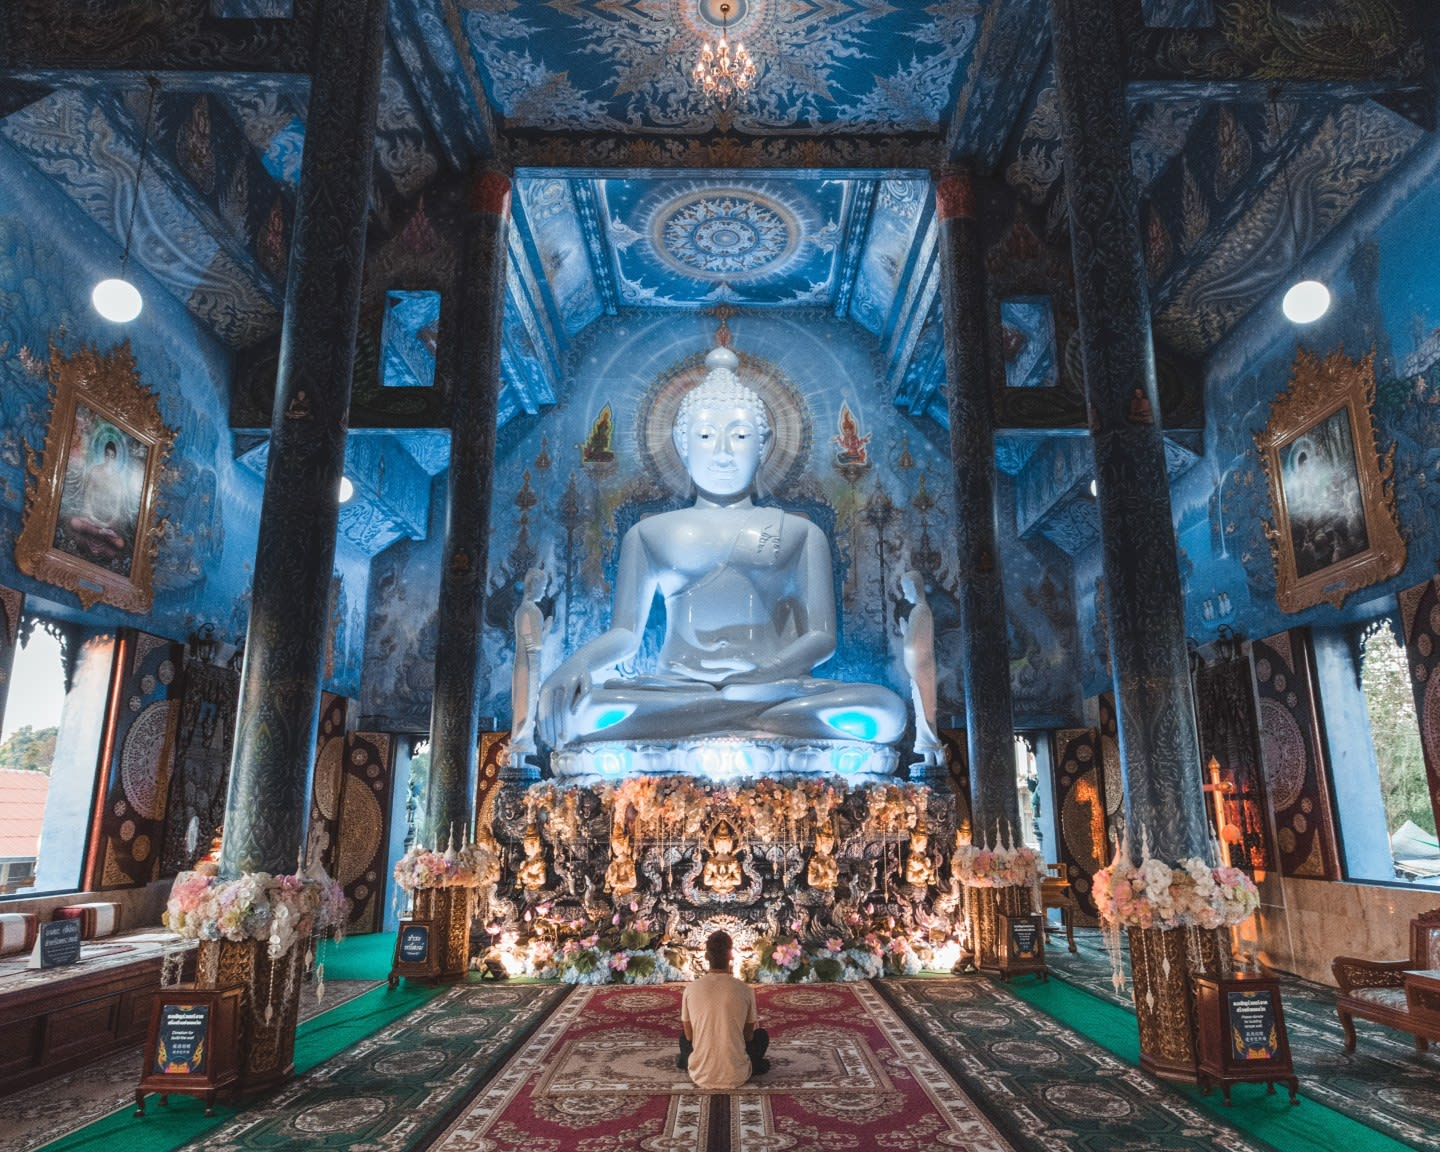 圖片取自https://lolapantravels.com/blue-temple-chiang-rai/